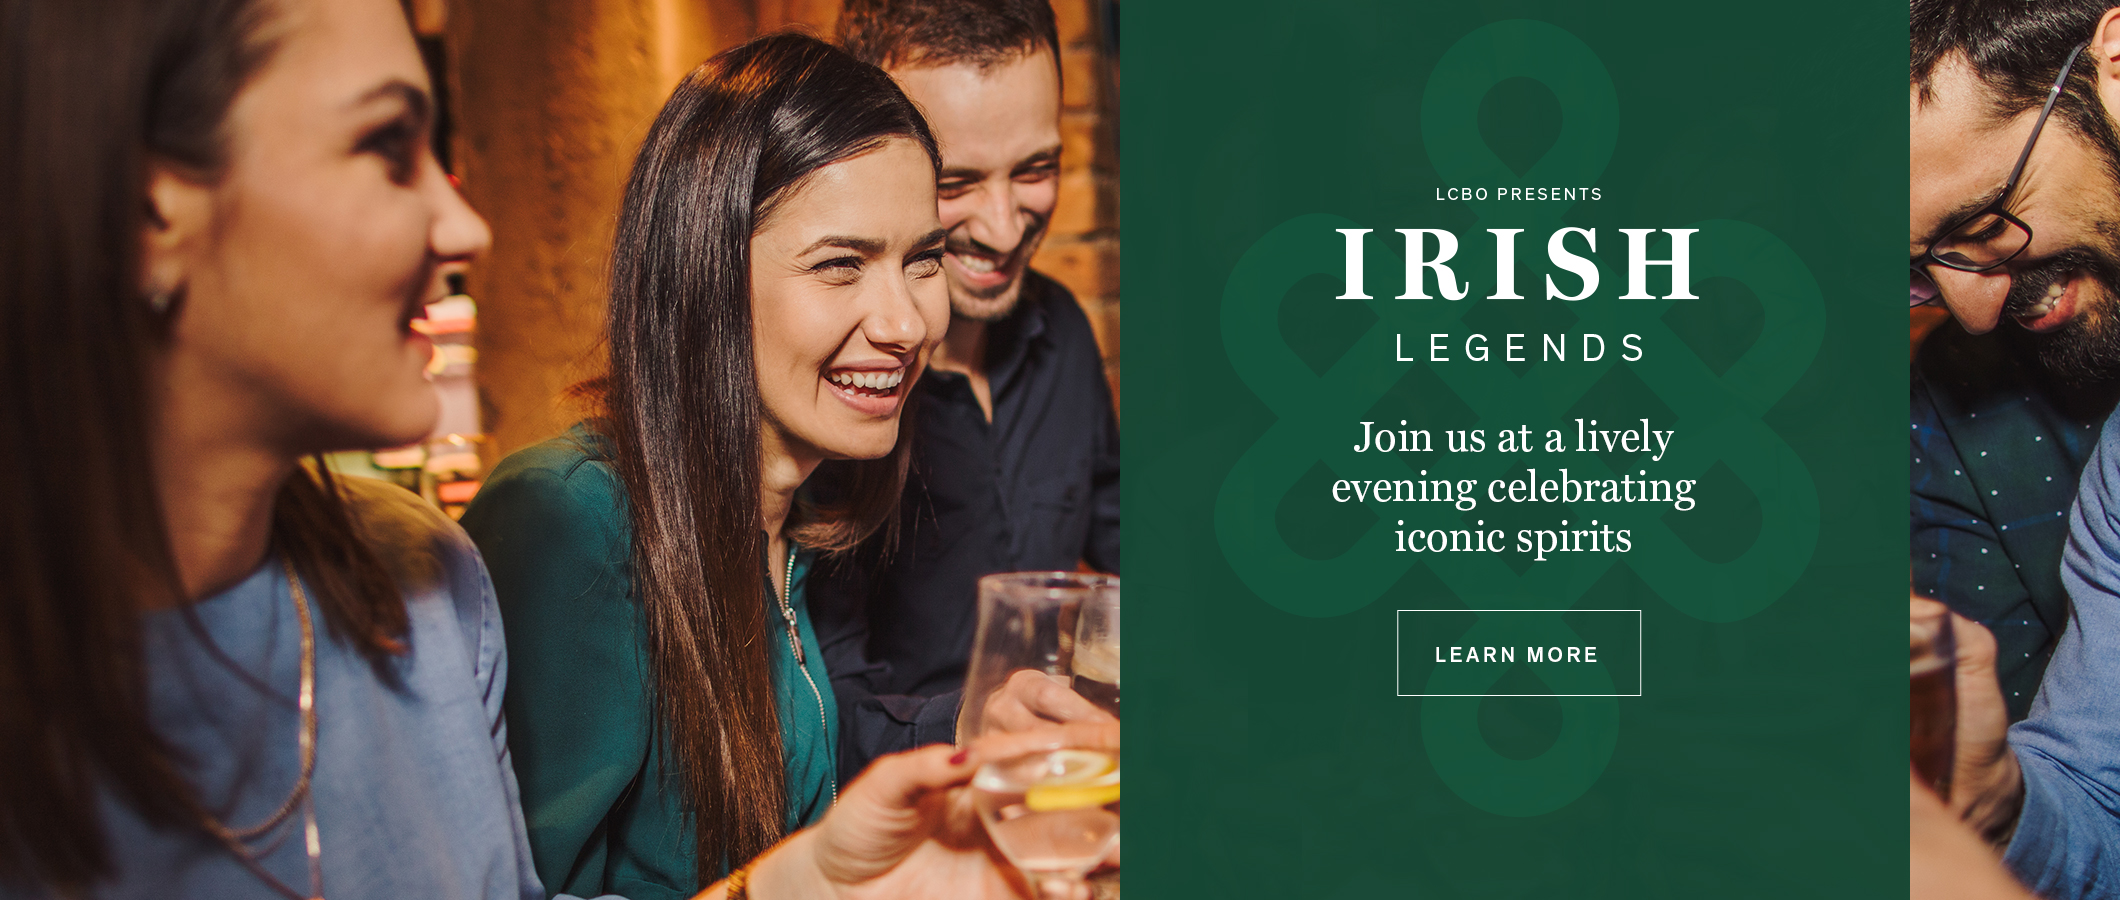 Irish Legends.  Join us at a lively evening celebrating iconic spirits.  READ MORE